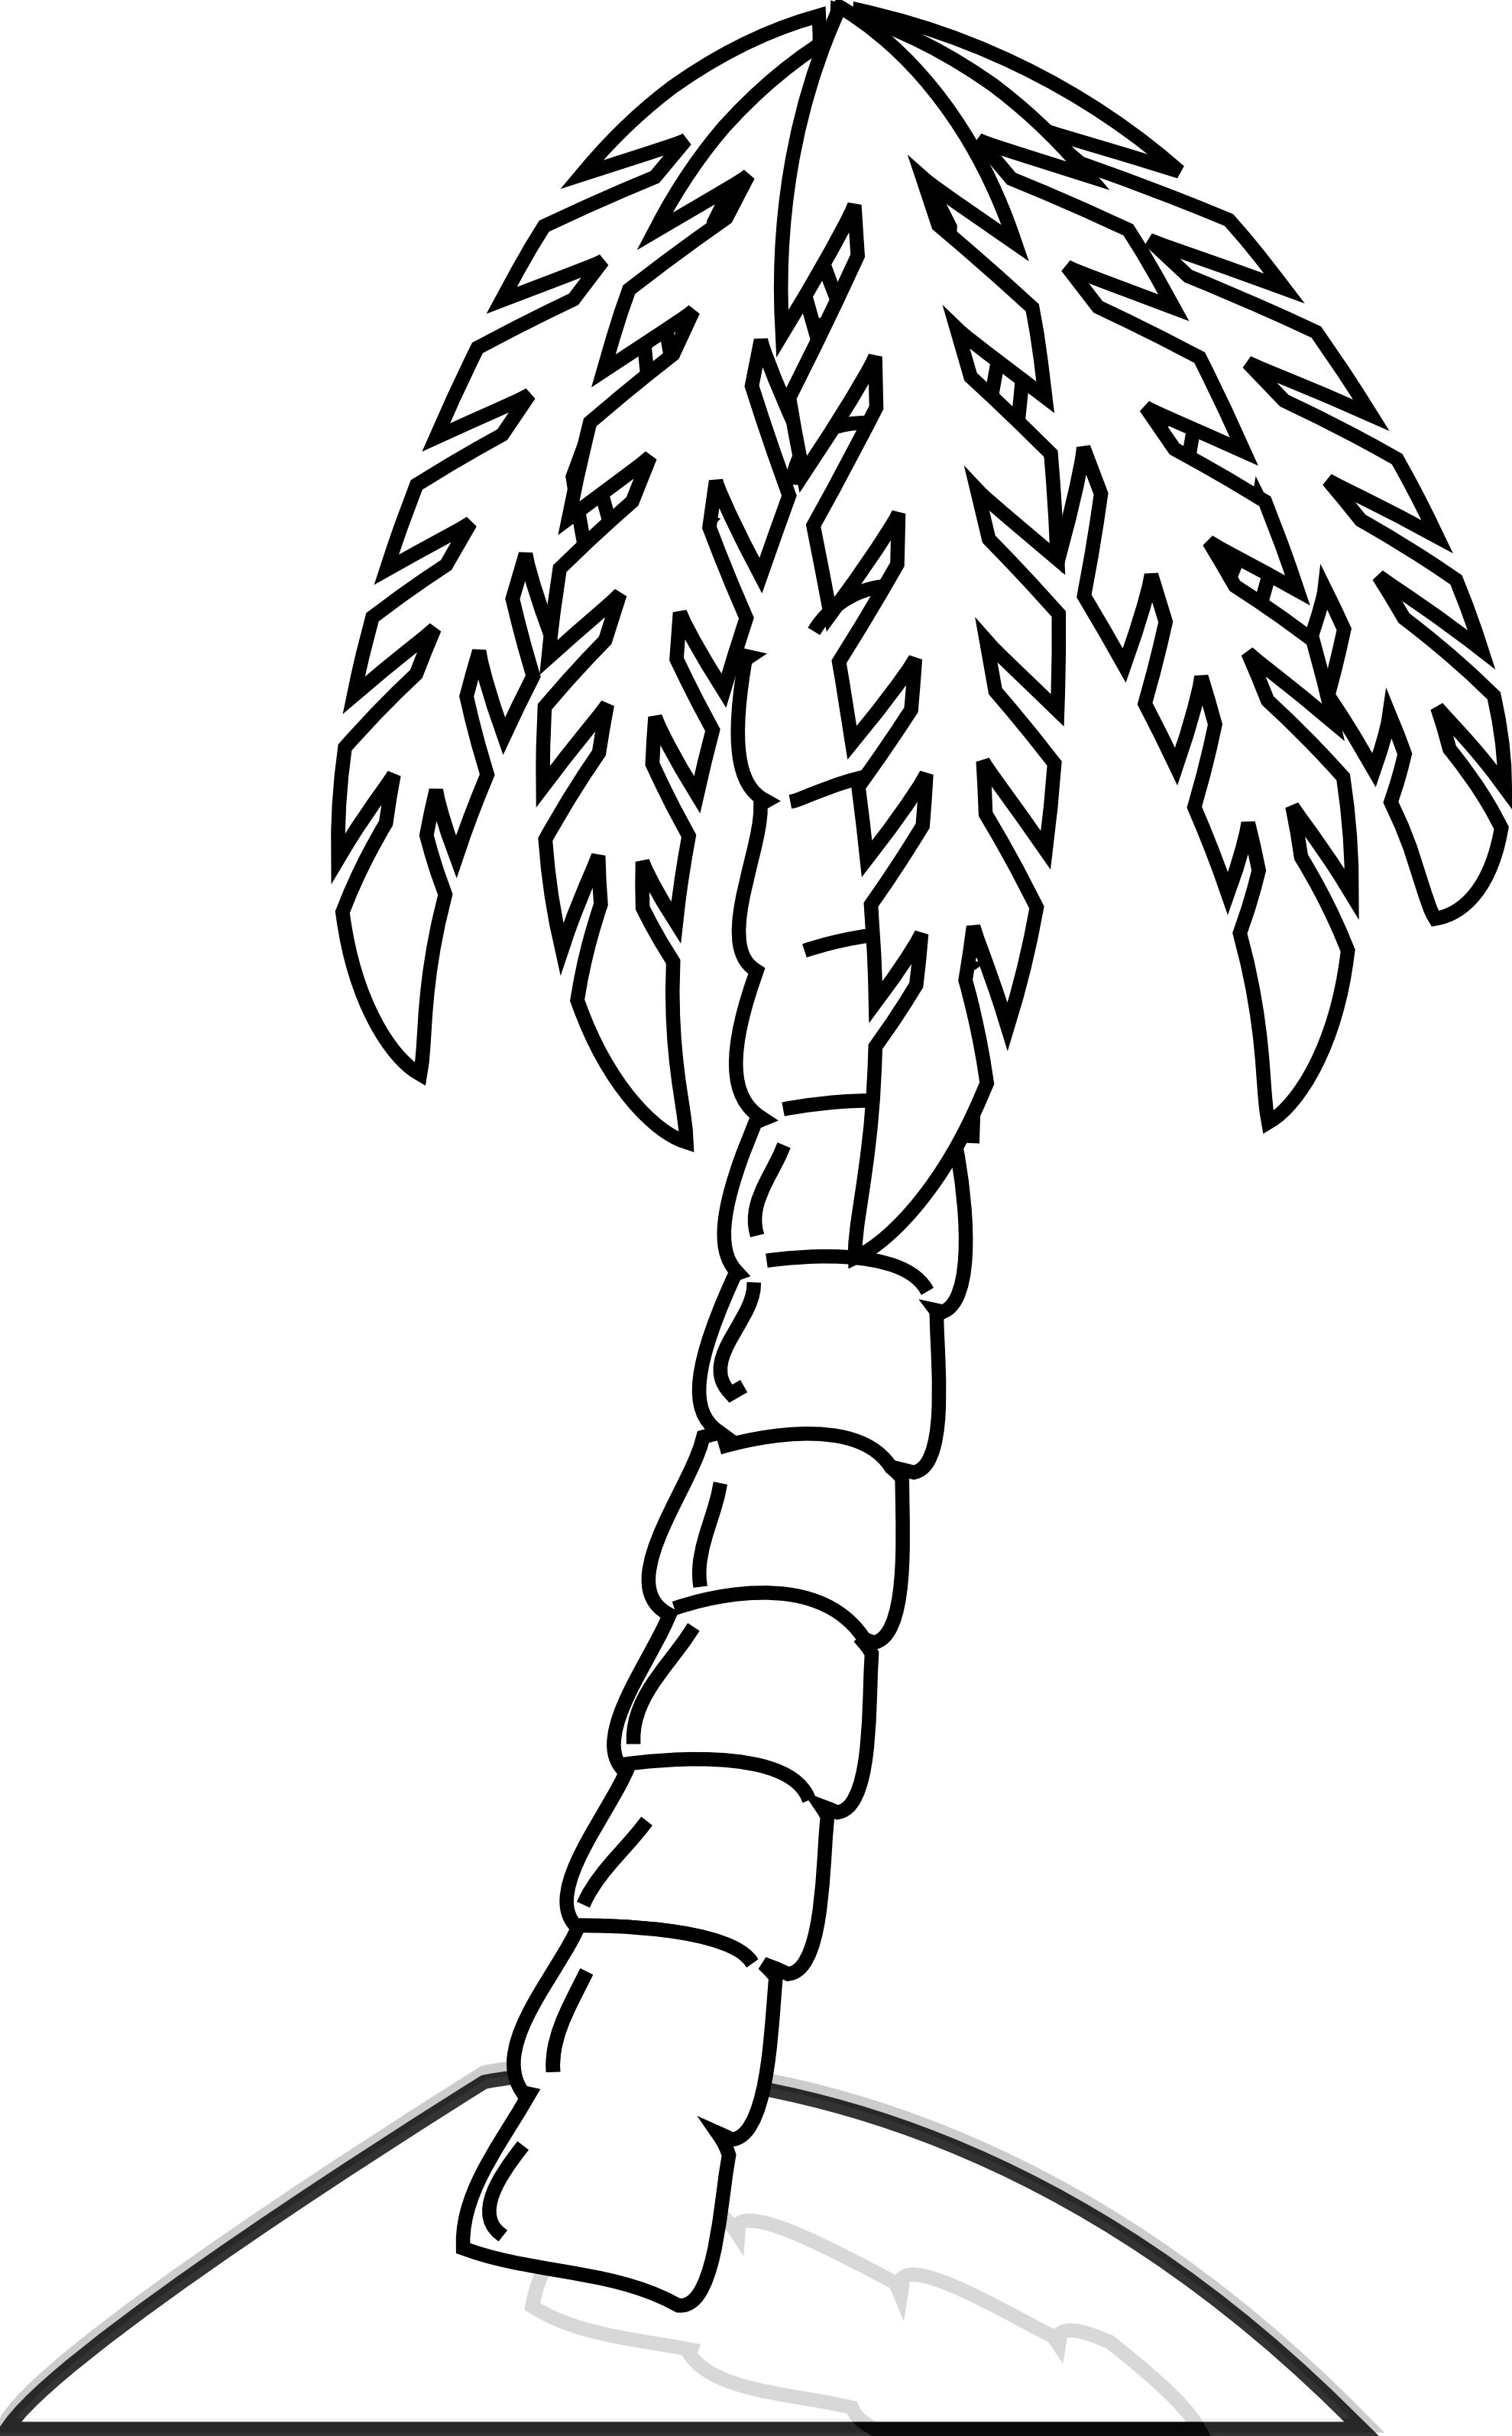 collection of narra. Tree clipart black and white